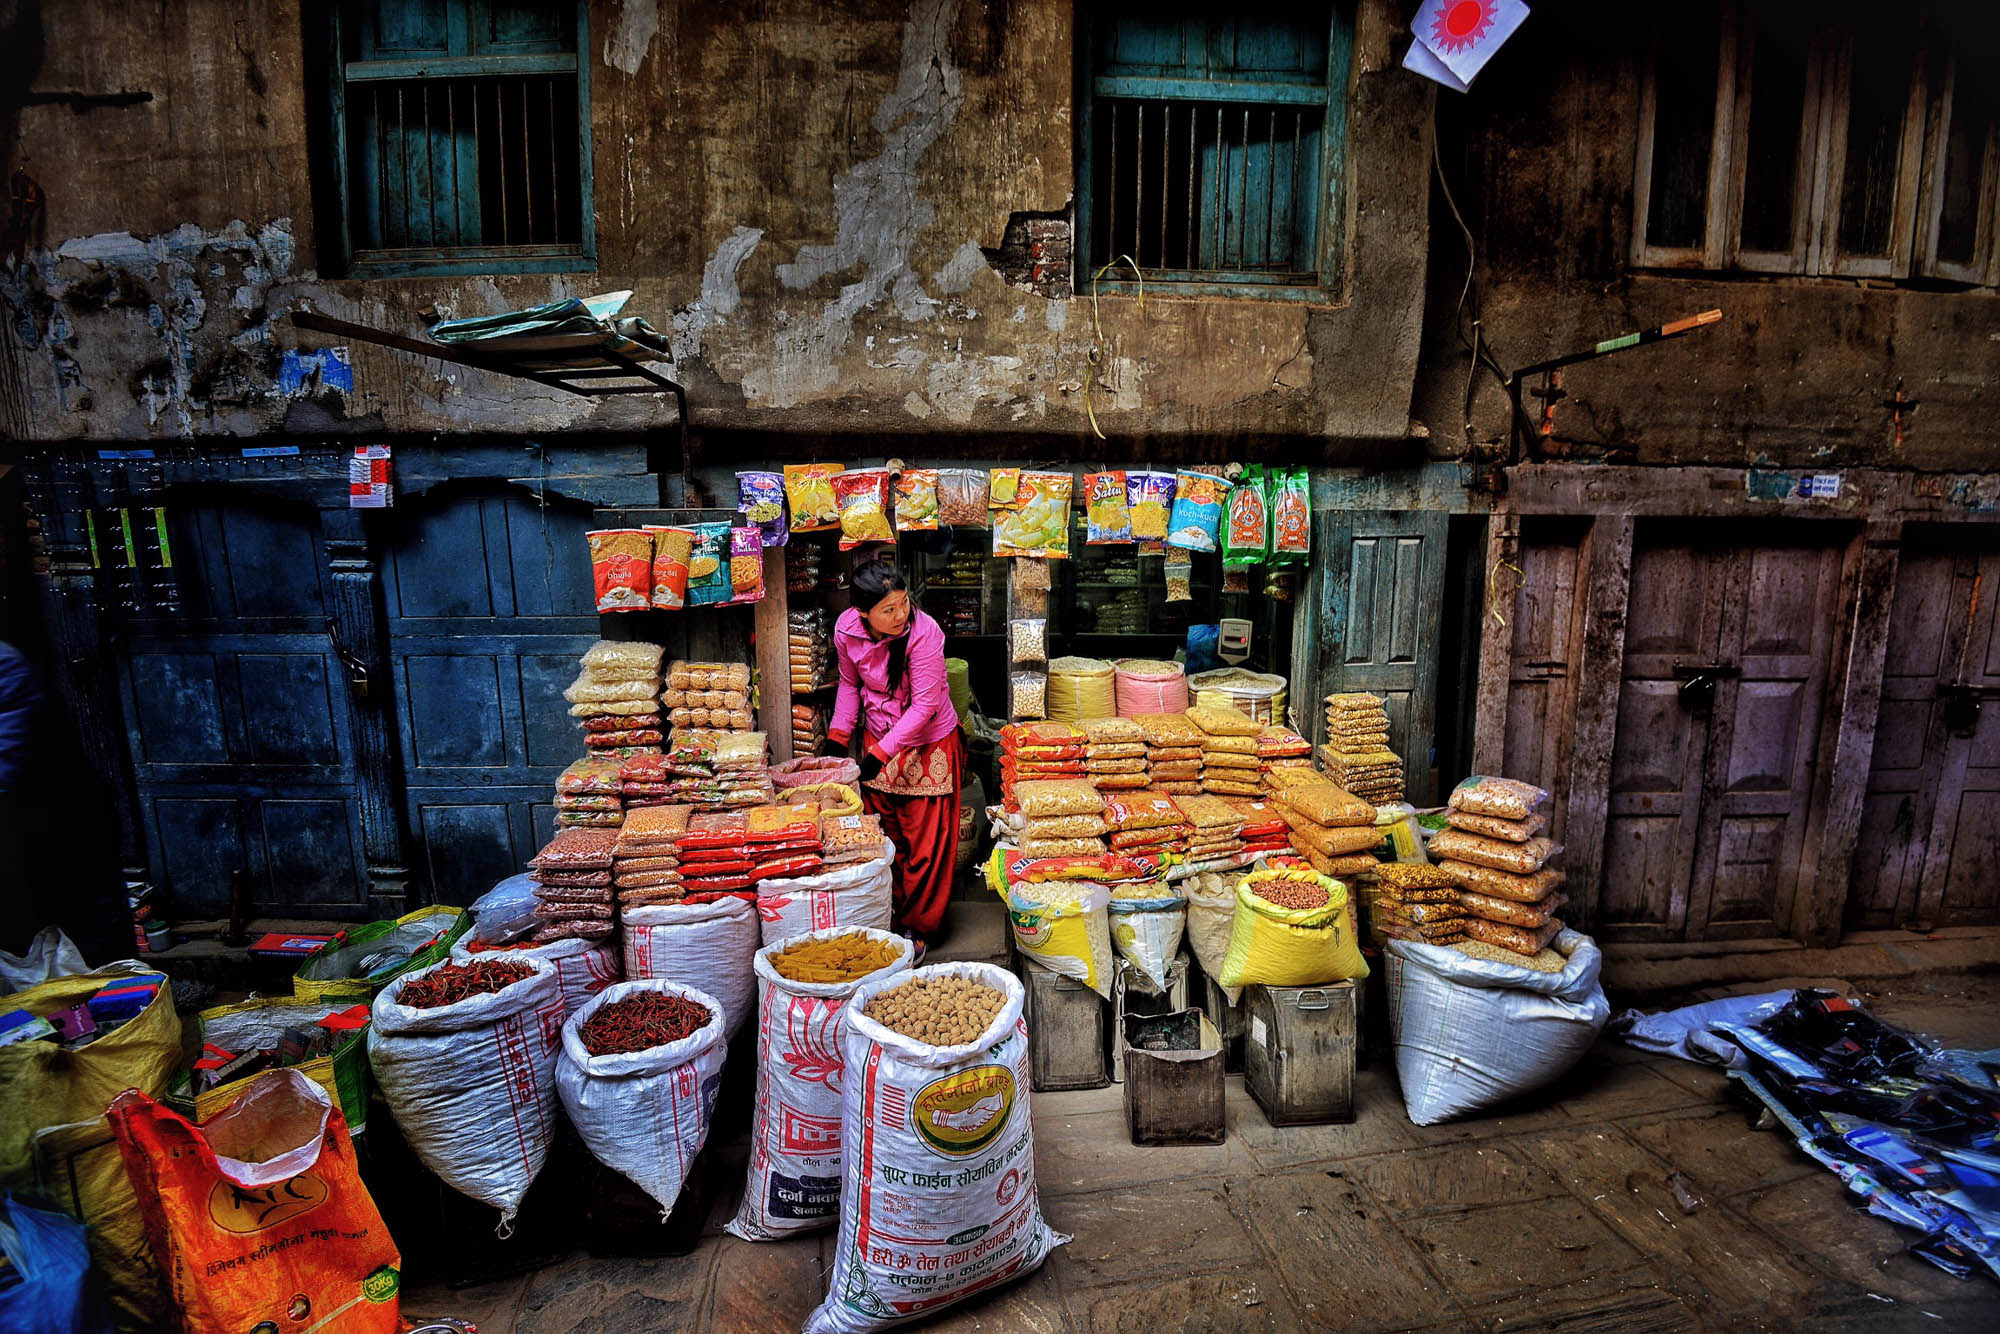 A lady selling beans and spices on the street of Kathmandu, Nepal.